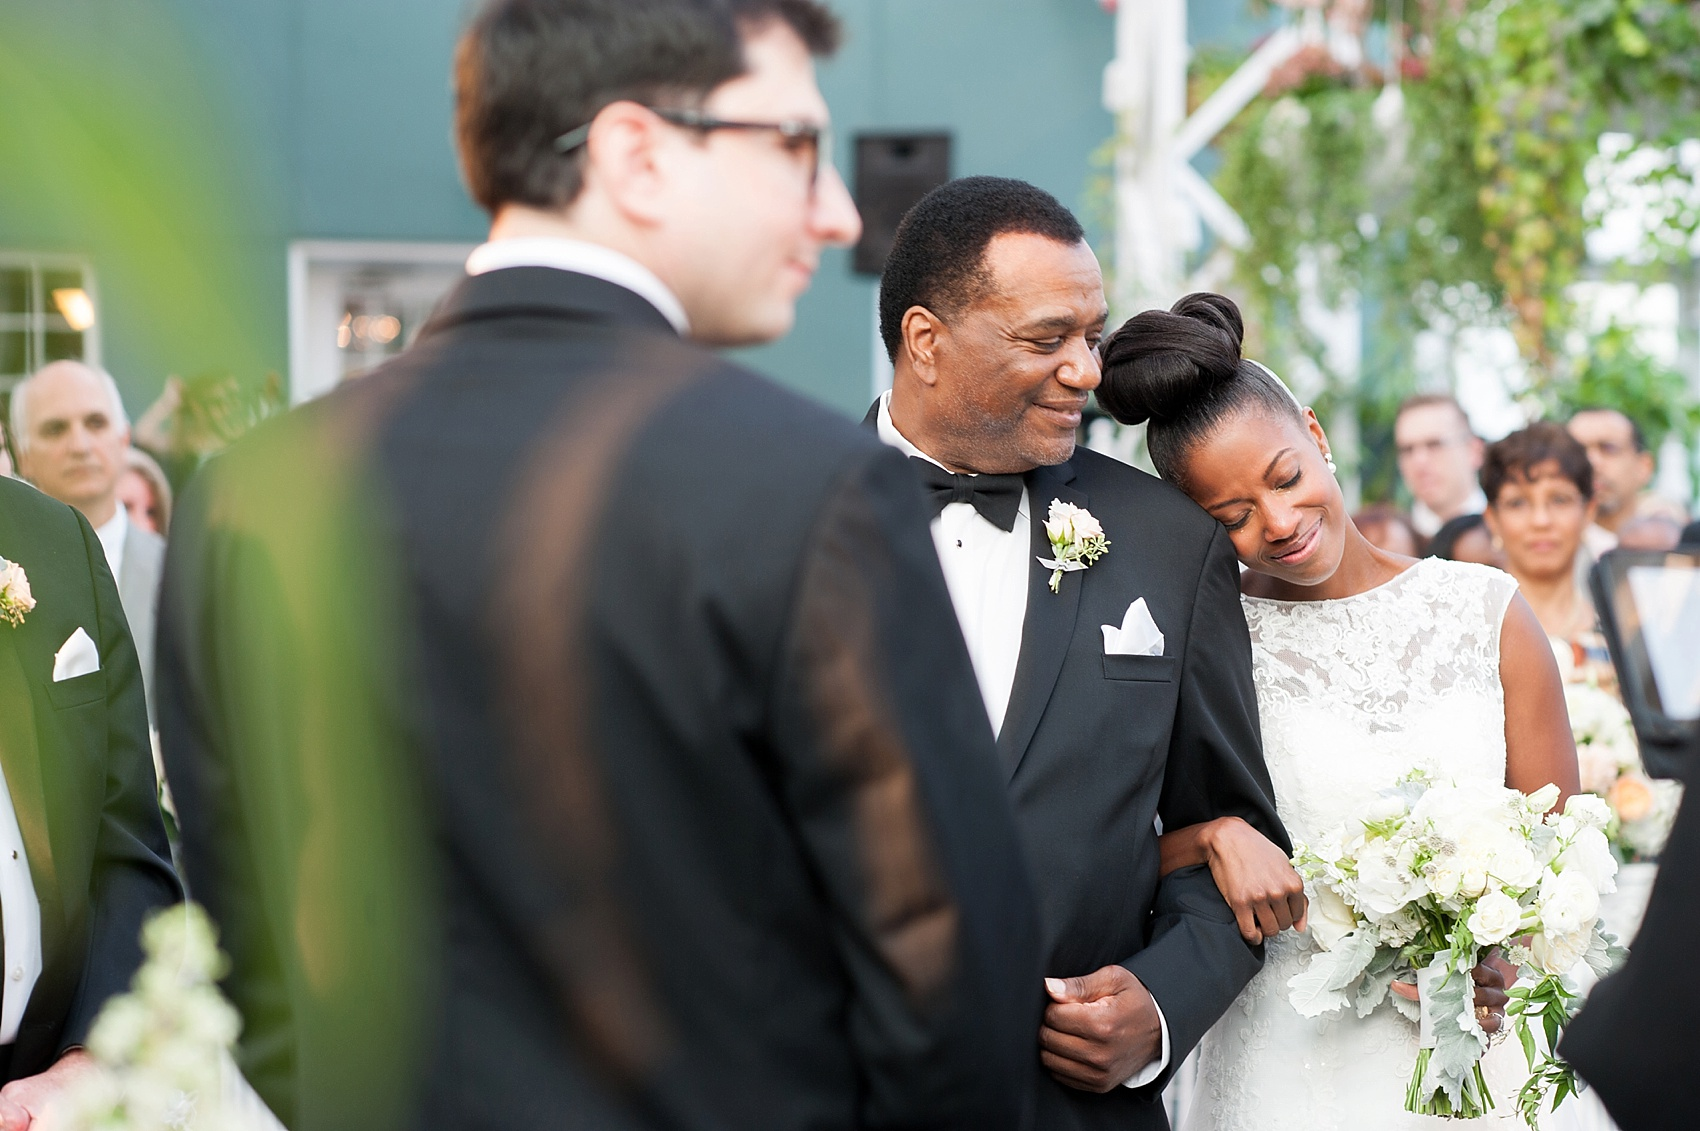 Wedding ceremony at the Conservatory at The Madison Hotel, New Jersey. Photos by Mikkel Paige Photography.